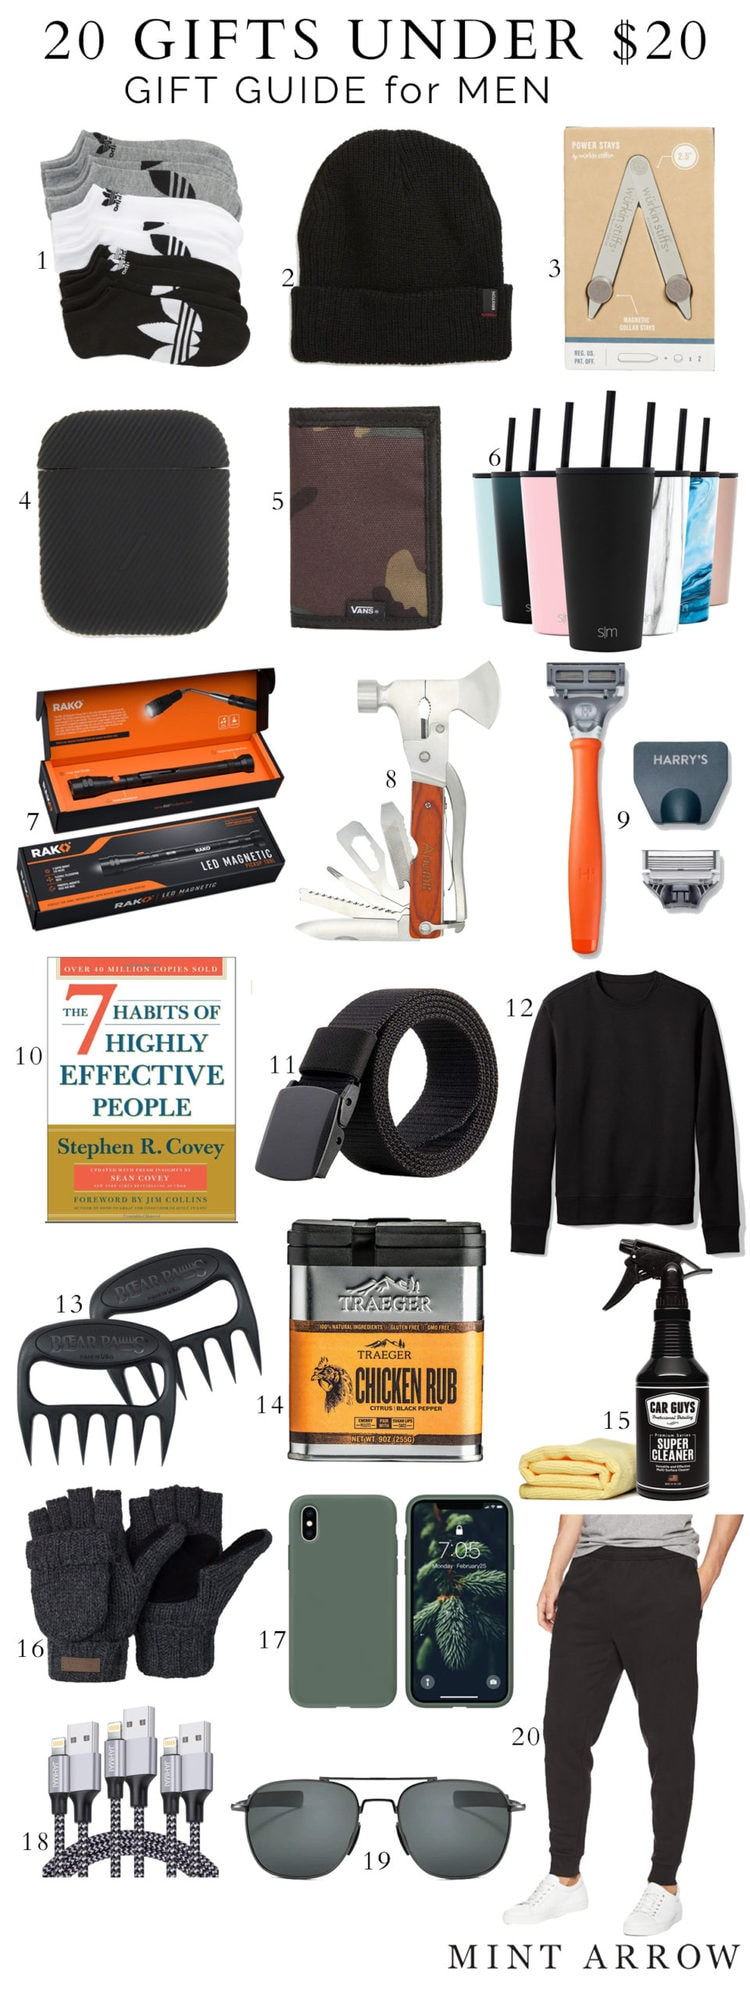 20 gifts for men under $20 christmas